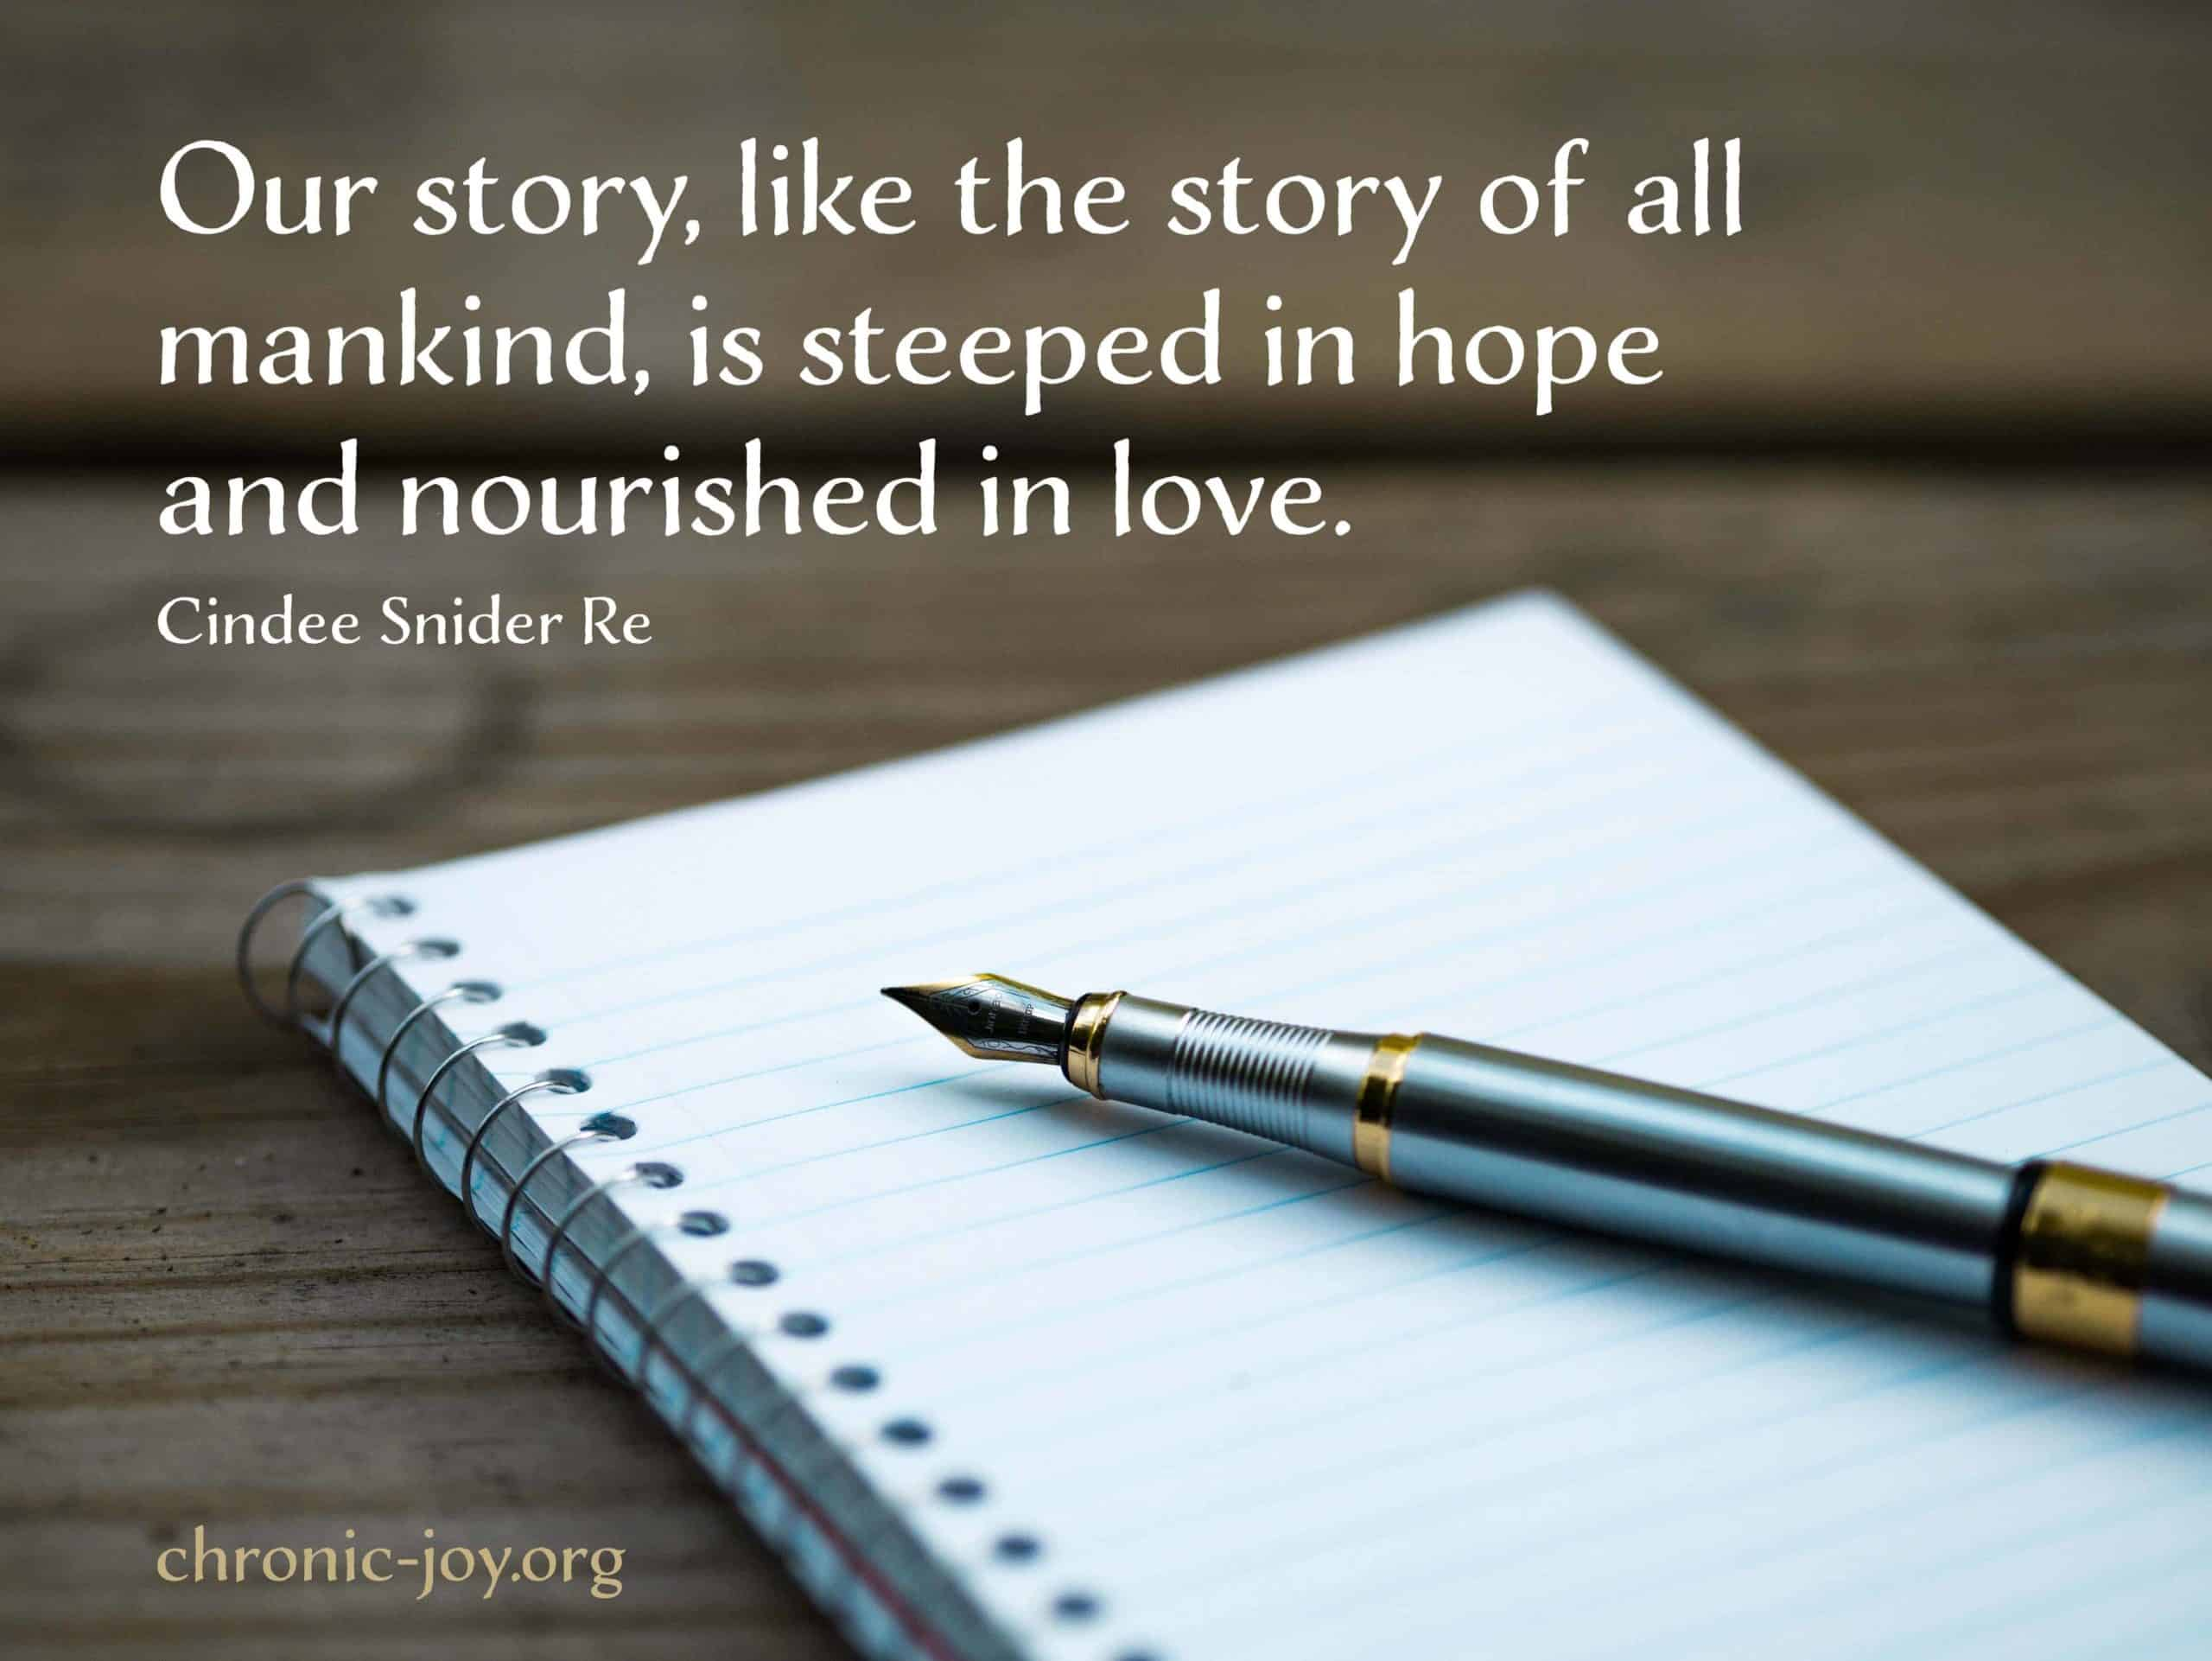 Steeped in hope